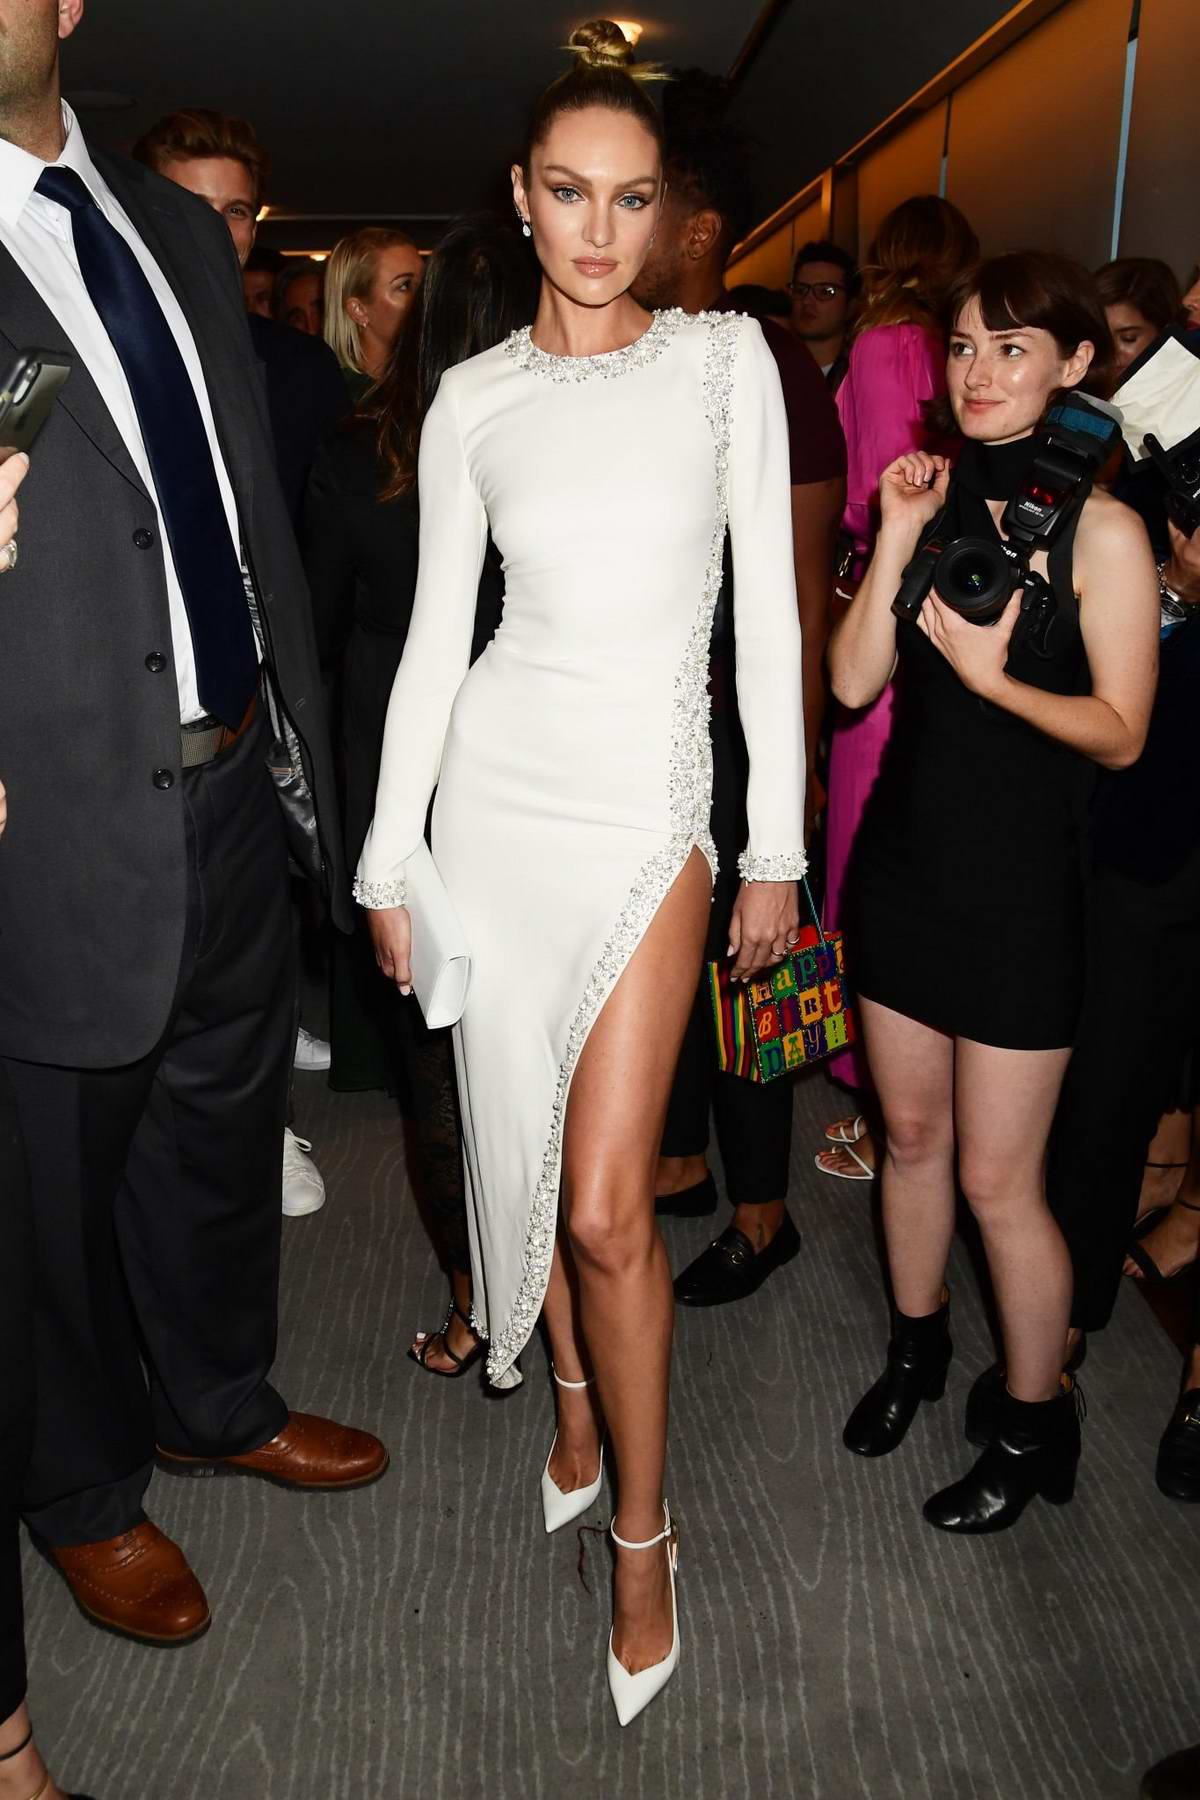 Candice Swanepoel attends The Daily Front Row Fashion Media Awards Spring/Summer 2020 in New York City